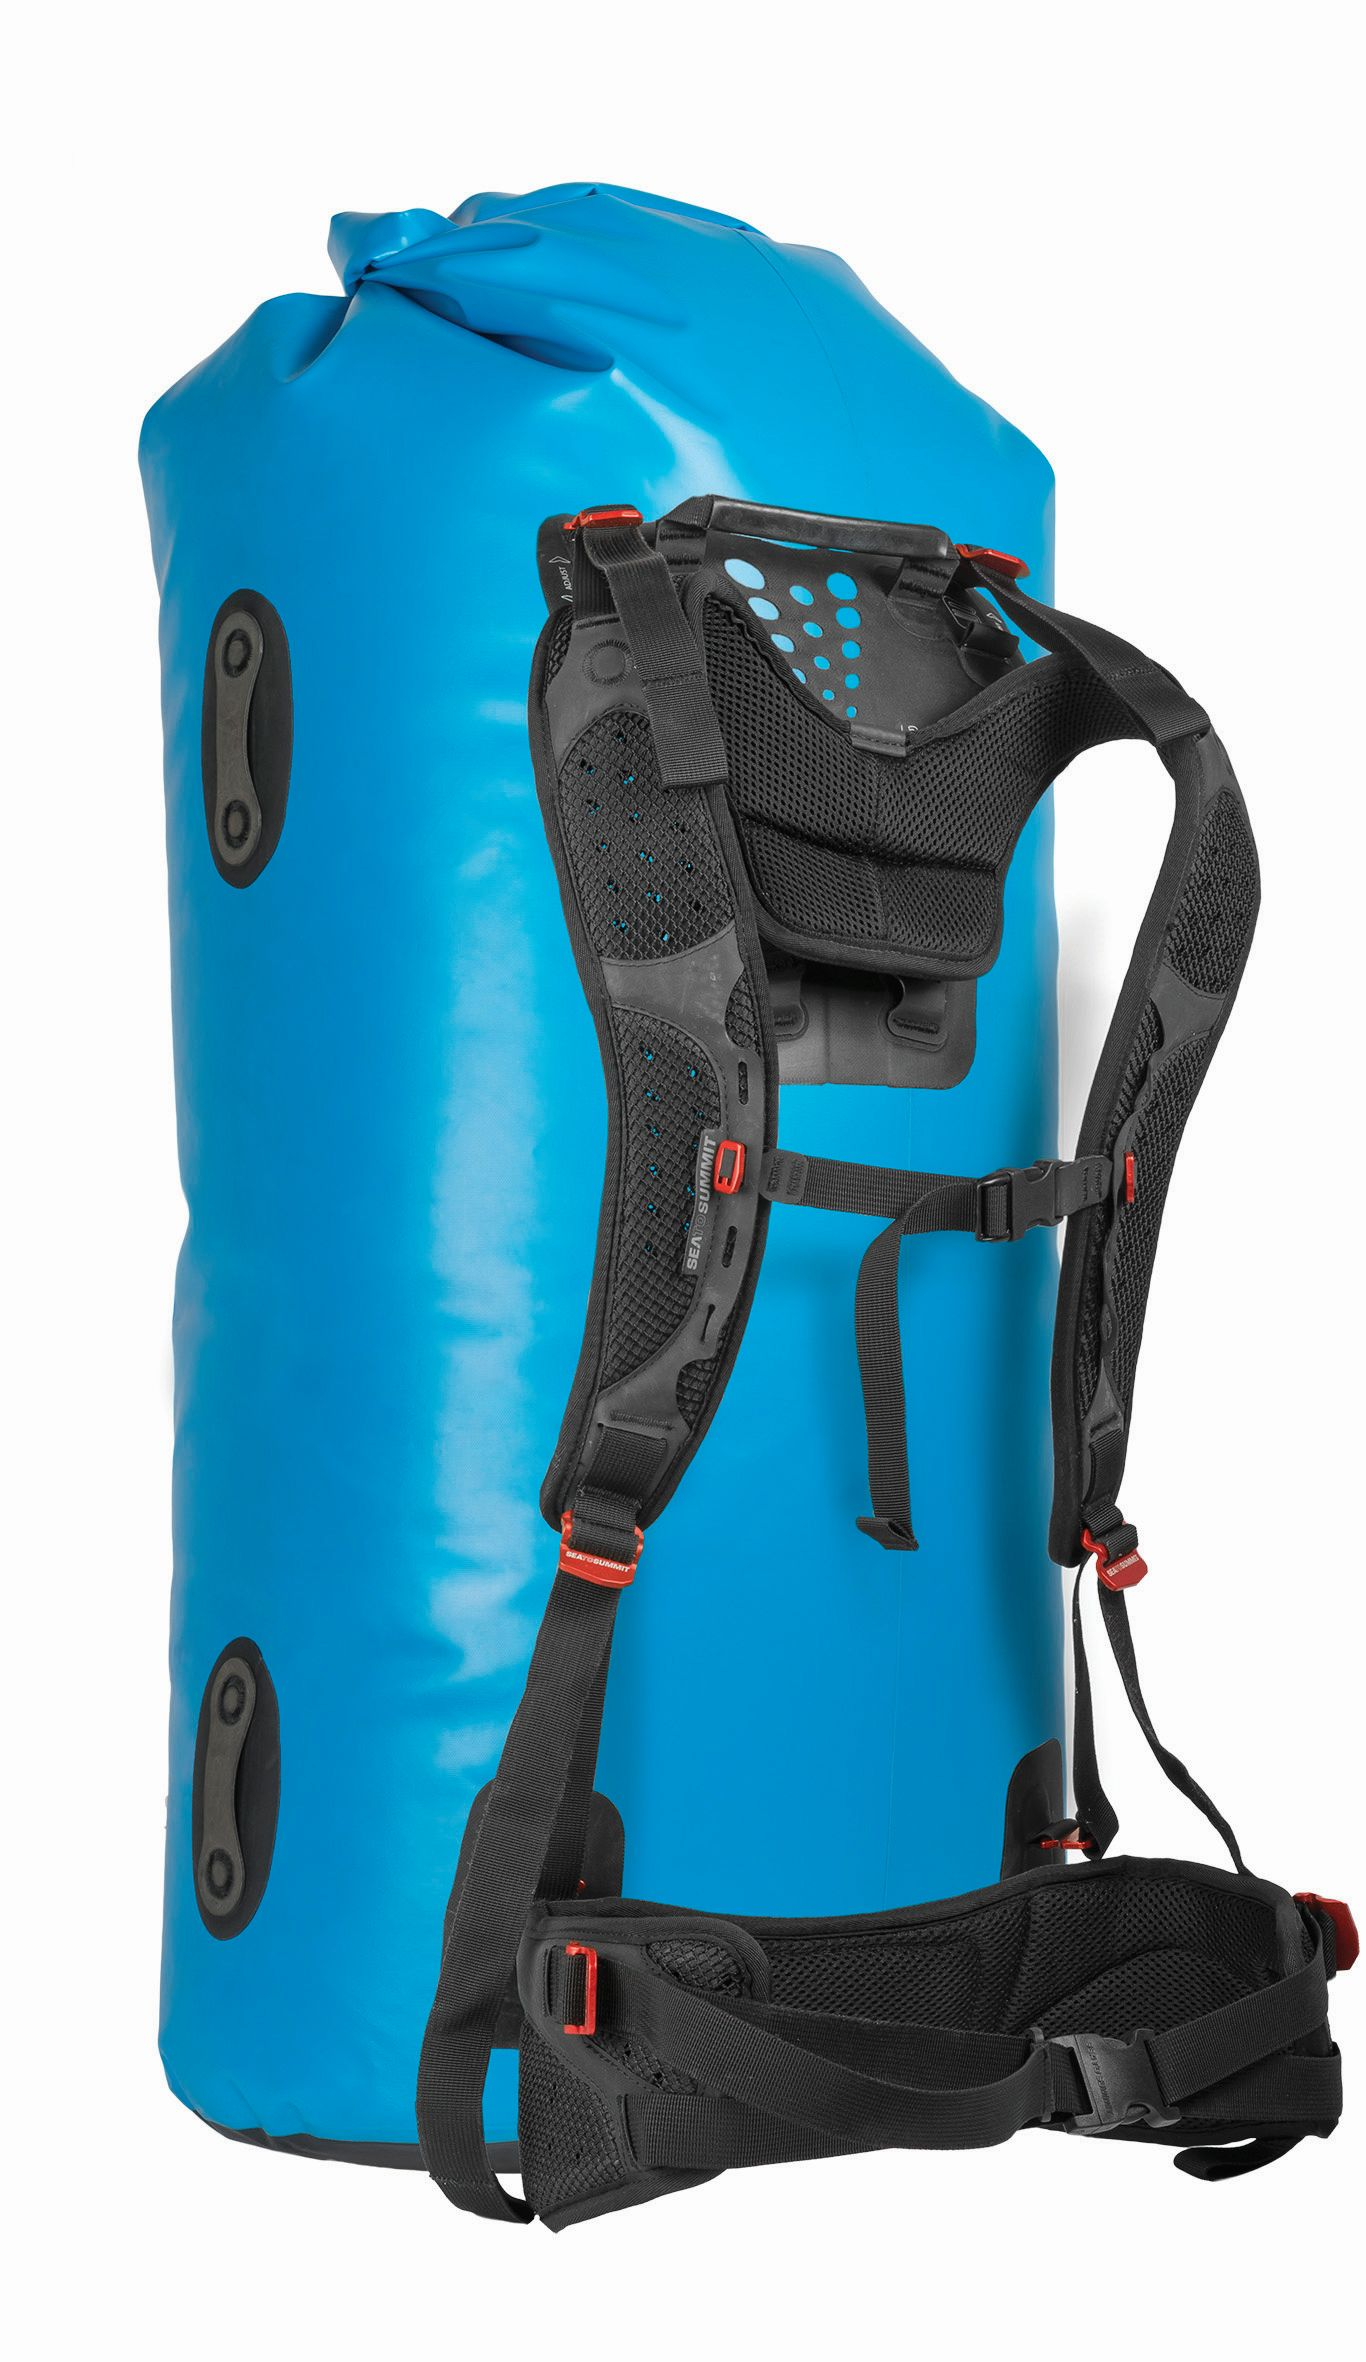 Sea To Summit Hydraulic Dry Bag with Harness 35L Blue-30